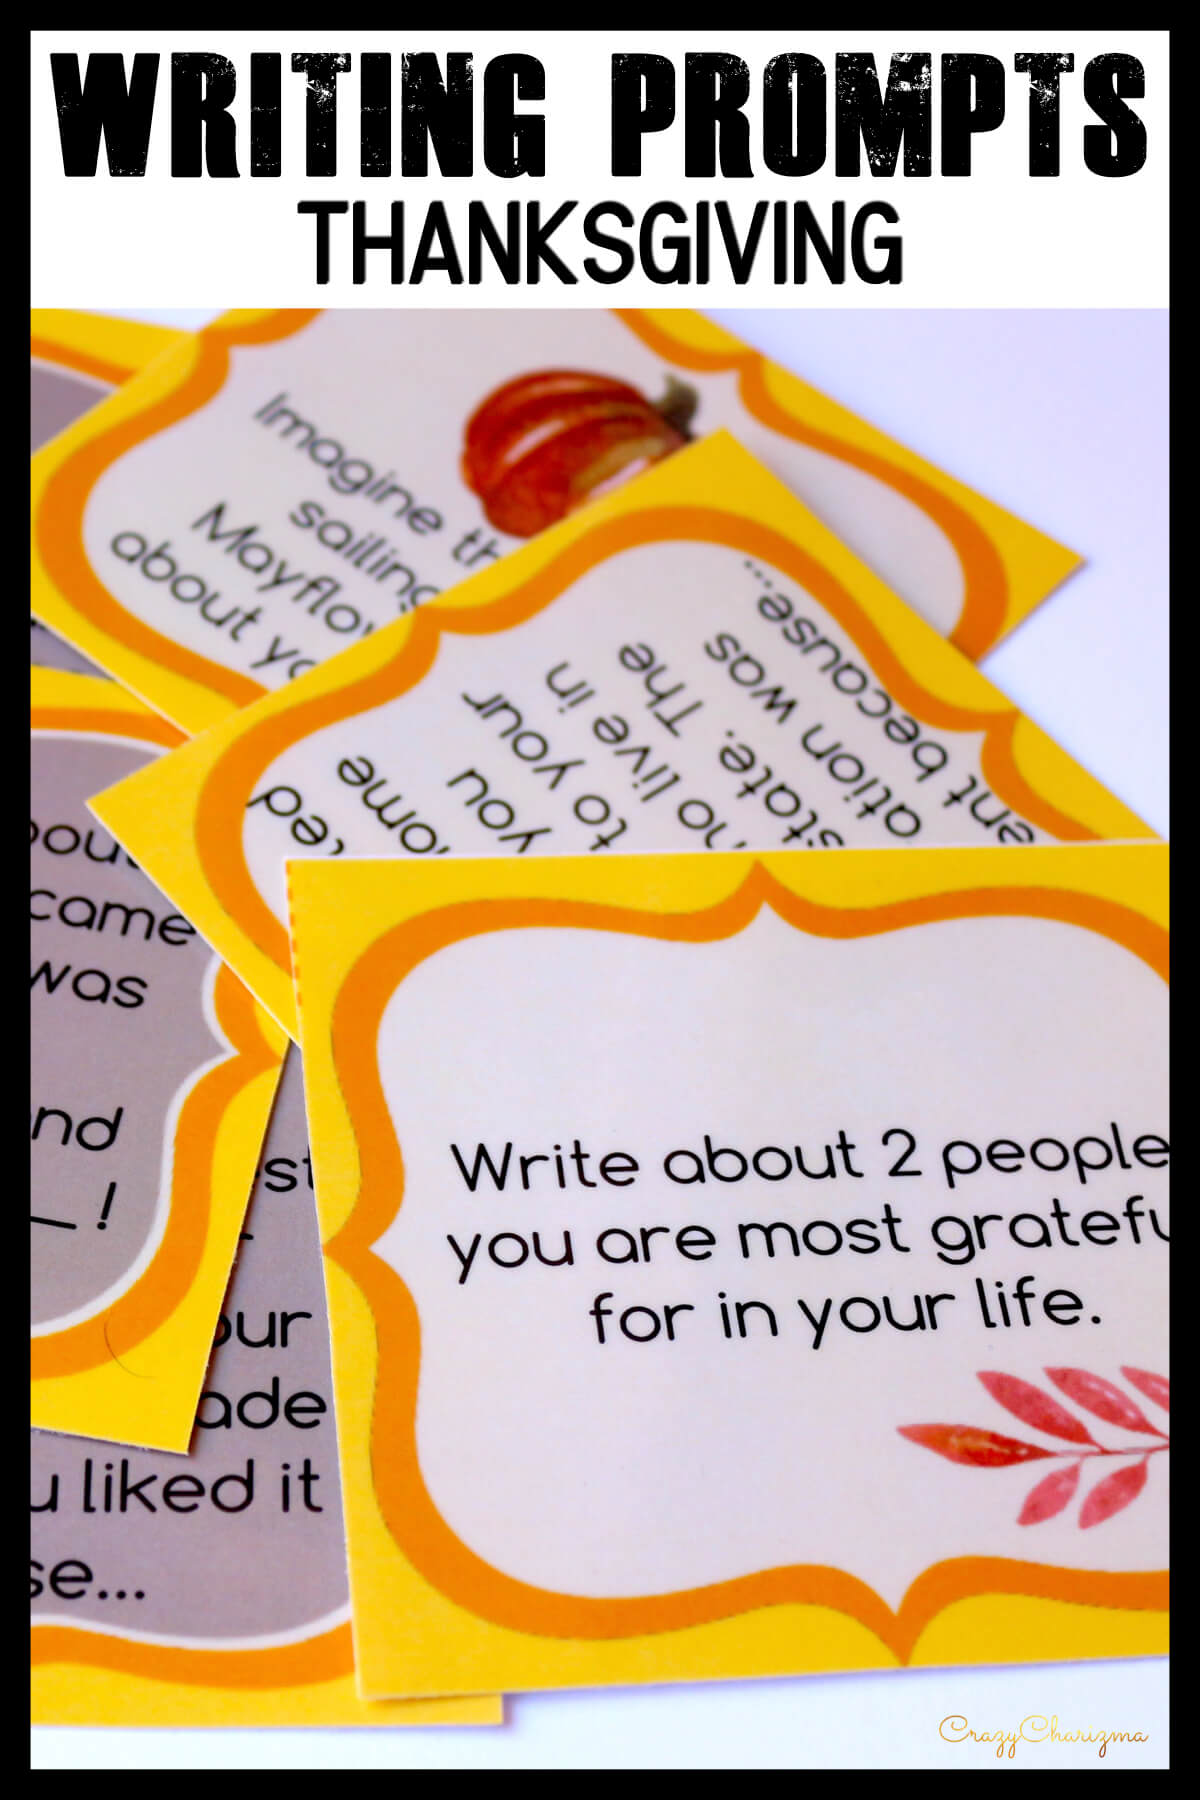 Celebrate Thanksgiving in your classroom and provide students with writing tasks and ideas. The packet contains narrative, informational and opinion writing prompts for teens. The prompts can be used as Writing Centers, as well as with adults during ESL lessons.